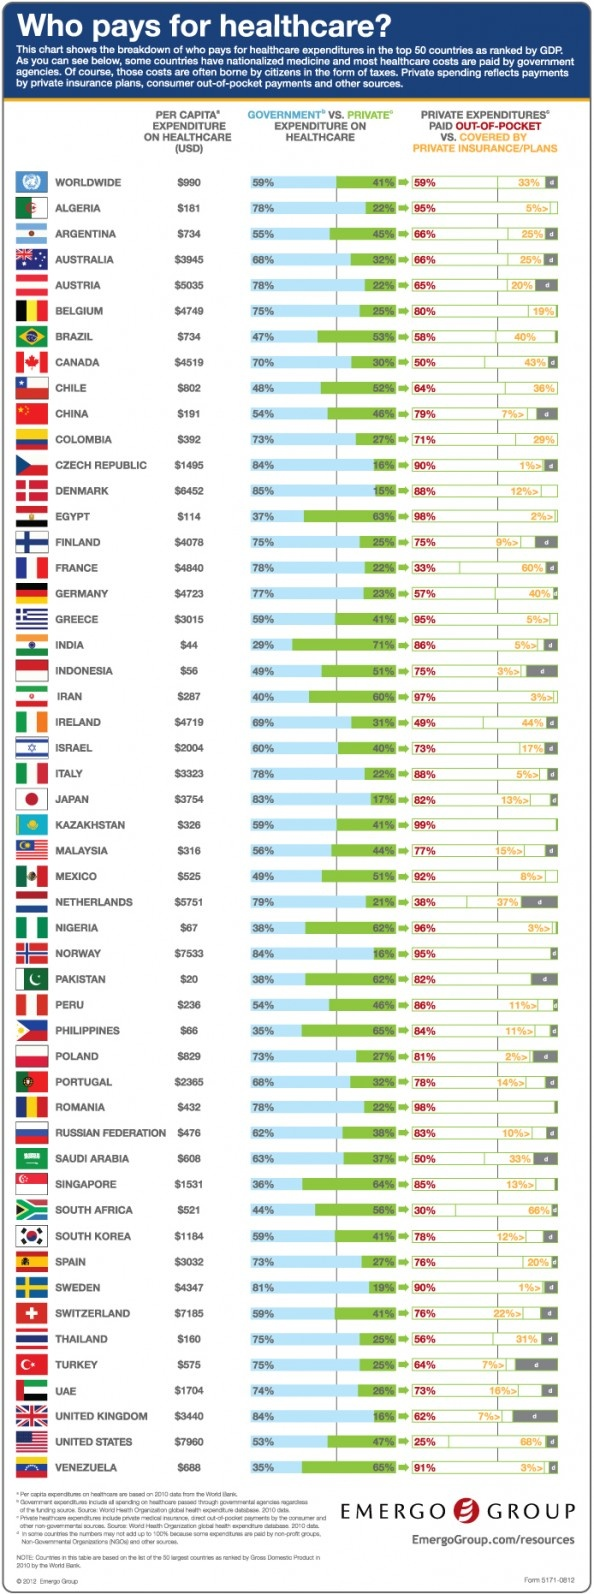 Who Pays For Healthcare? By country #healthcare #health #pharma ~NHS supply chain & Healthcare Personnel Supplies - high calibre salaried and locum staffing - Doctors, Nurses